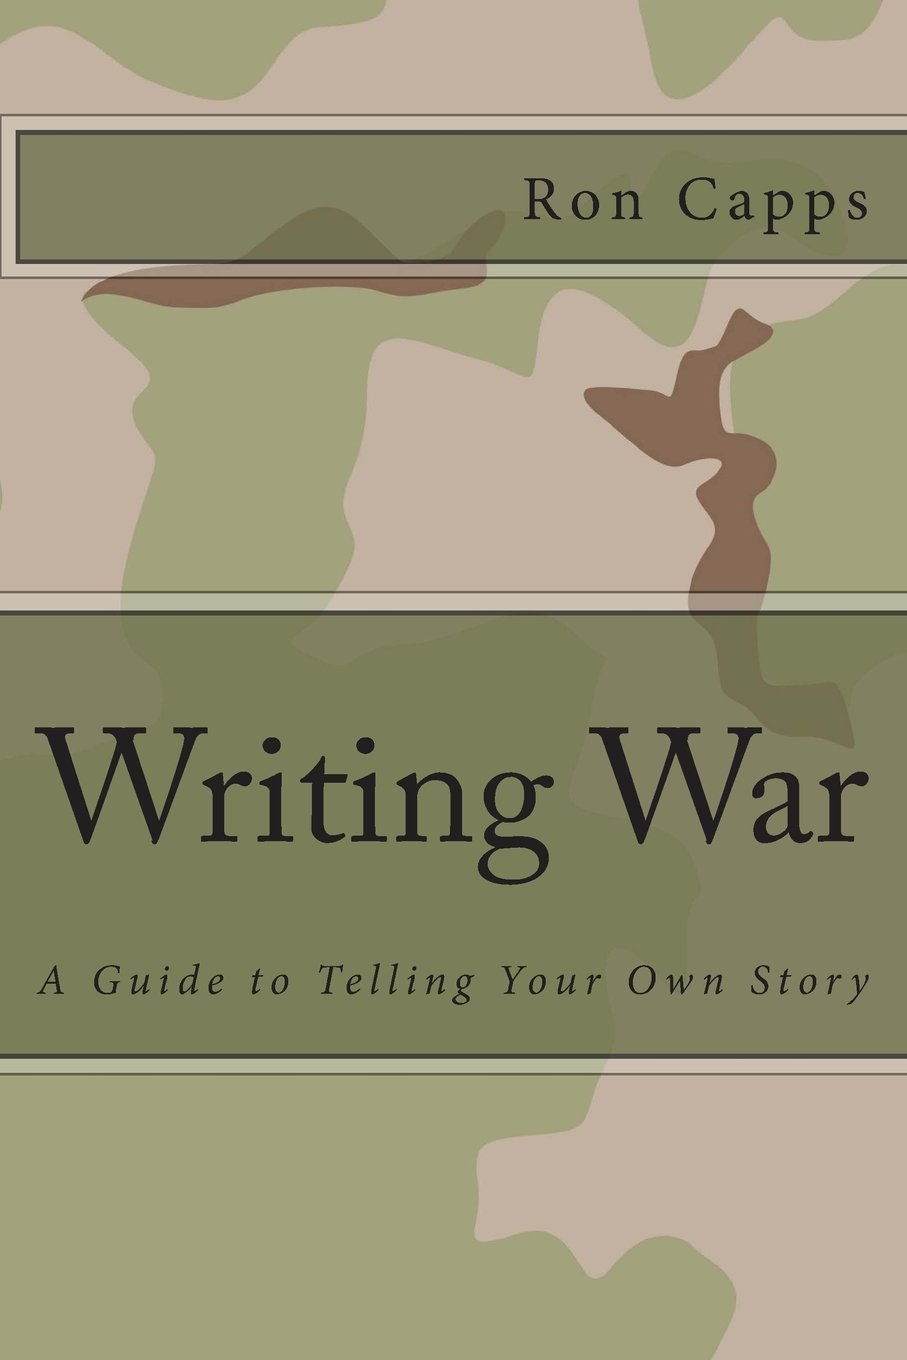 Writing War: A Guide to Telling Your Own Story: Ron Capps: 9781466435025:  Amazon.com: Books